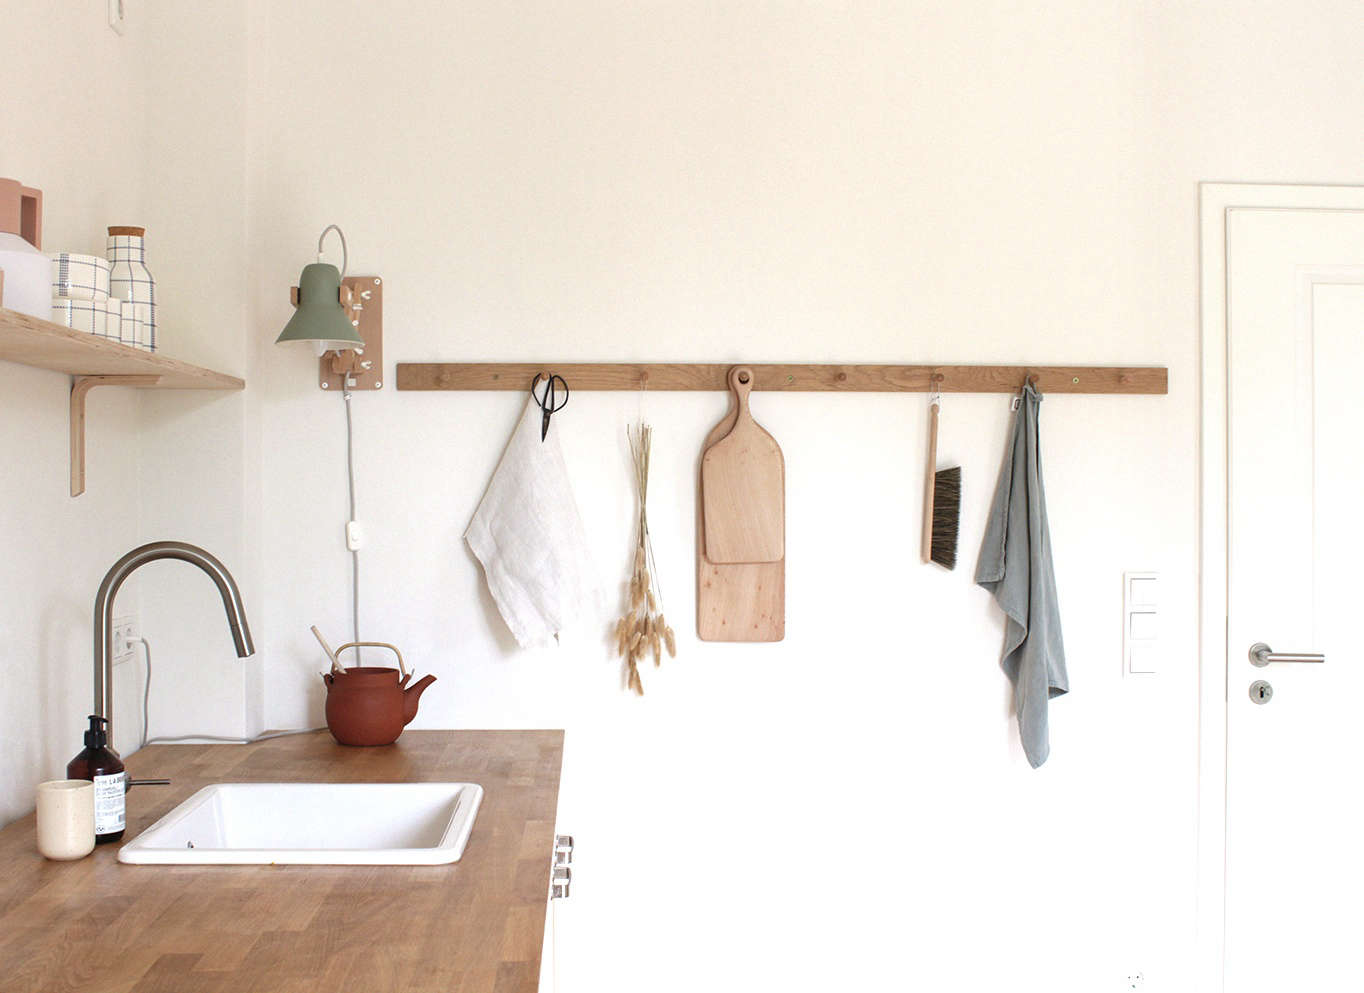 Shaker peg rail used for hanging accessories in the kitchen of illustrator/graphic designer Swantje Hinrichsen, Munster, Germany.